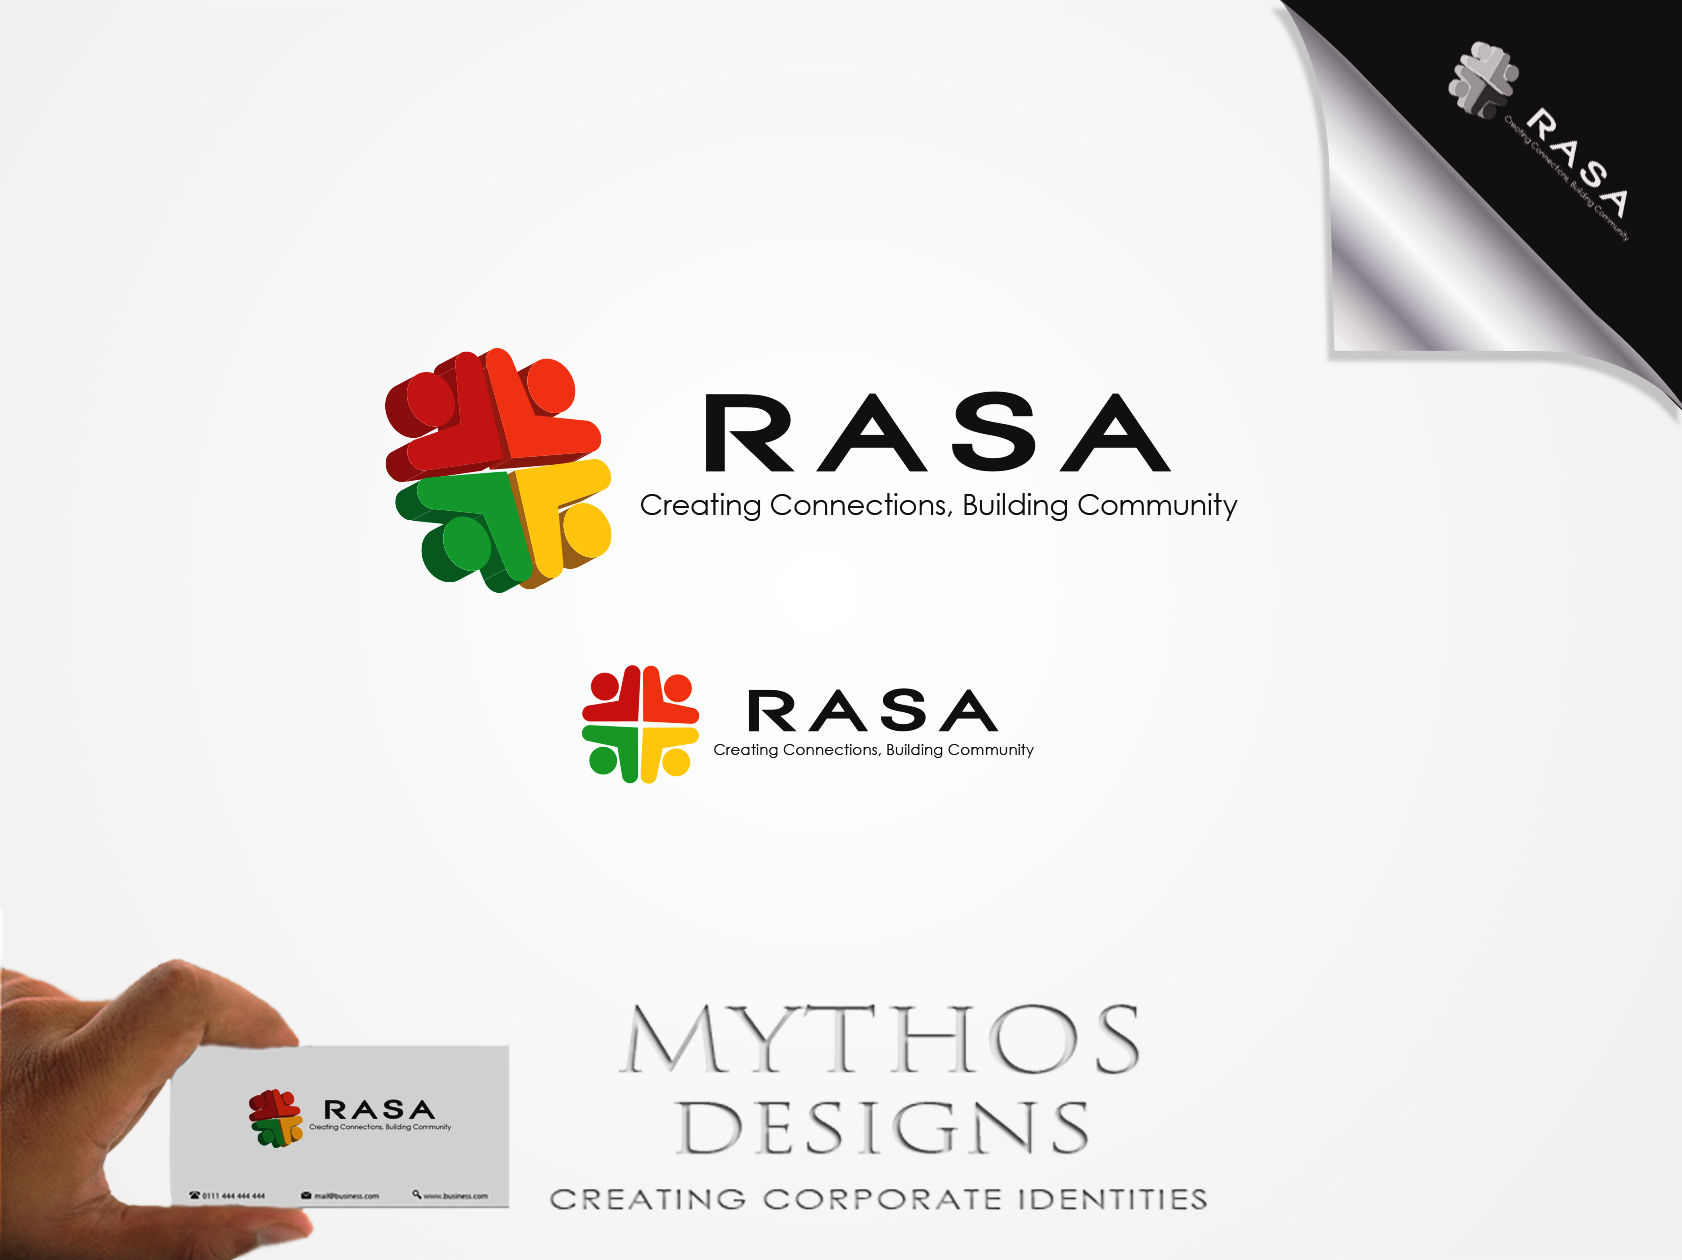 Logo Design by Mythos Designs - Entry No. 47 in the Logo Design Contest New Logo Design for RASA - Richmond Association of School Administrato.